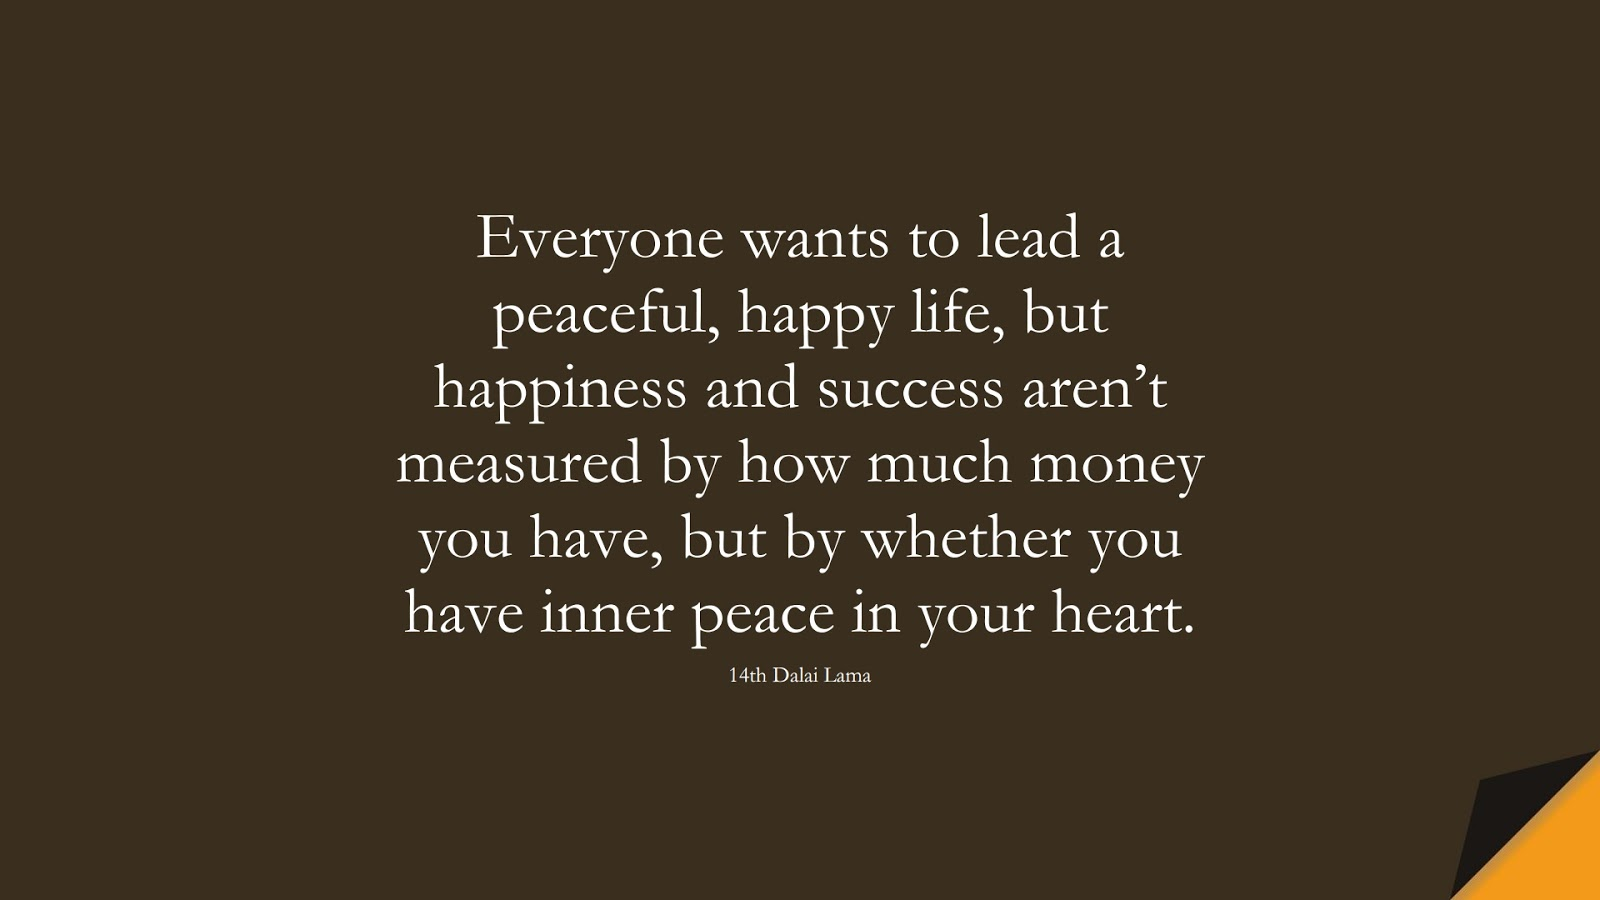 Everyone wants to lead a peaceful, happy life, but happiness and success aren't measured by how much money you have, but by whether you have inner peace in your heart. (14th Dalai Lama);  #LoveYourselfQuotes